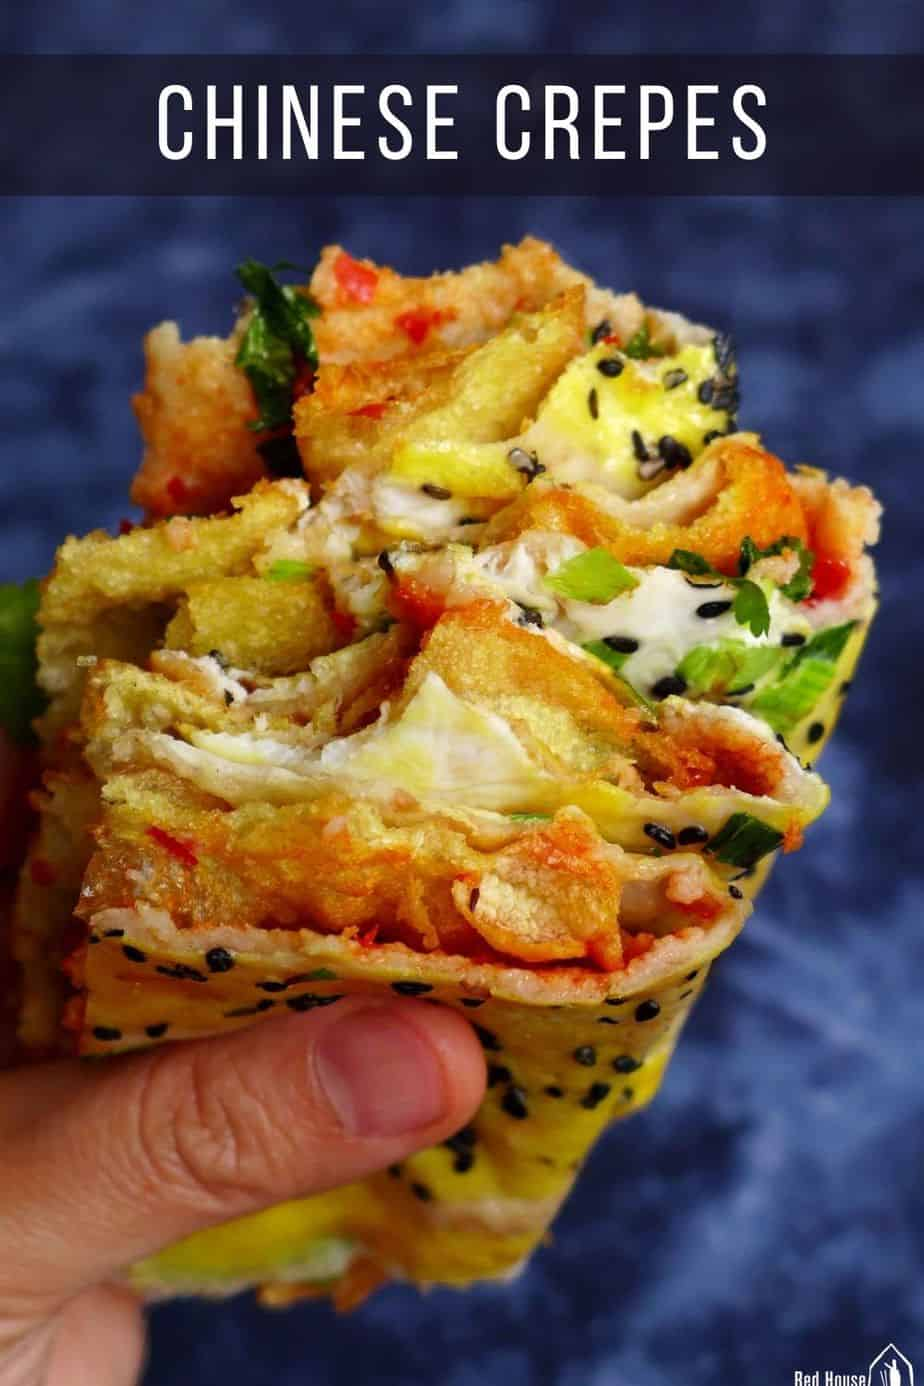 Chinese crepe held by a hand